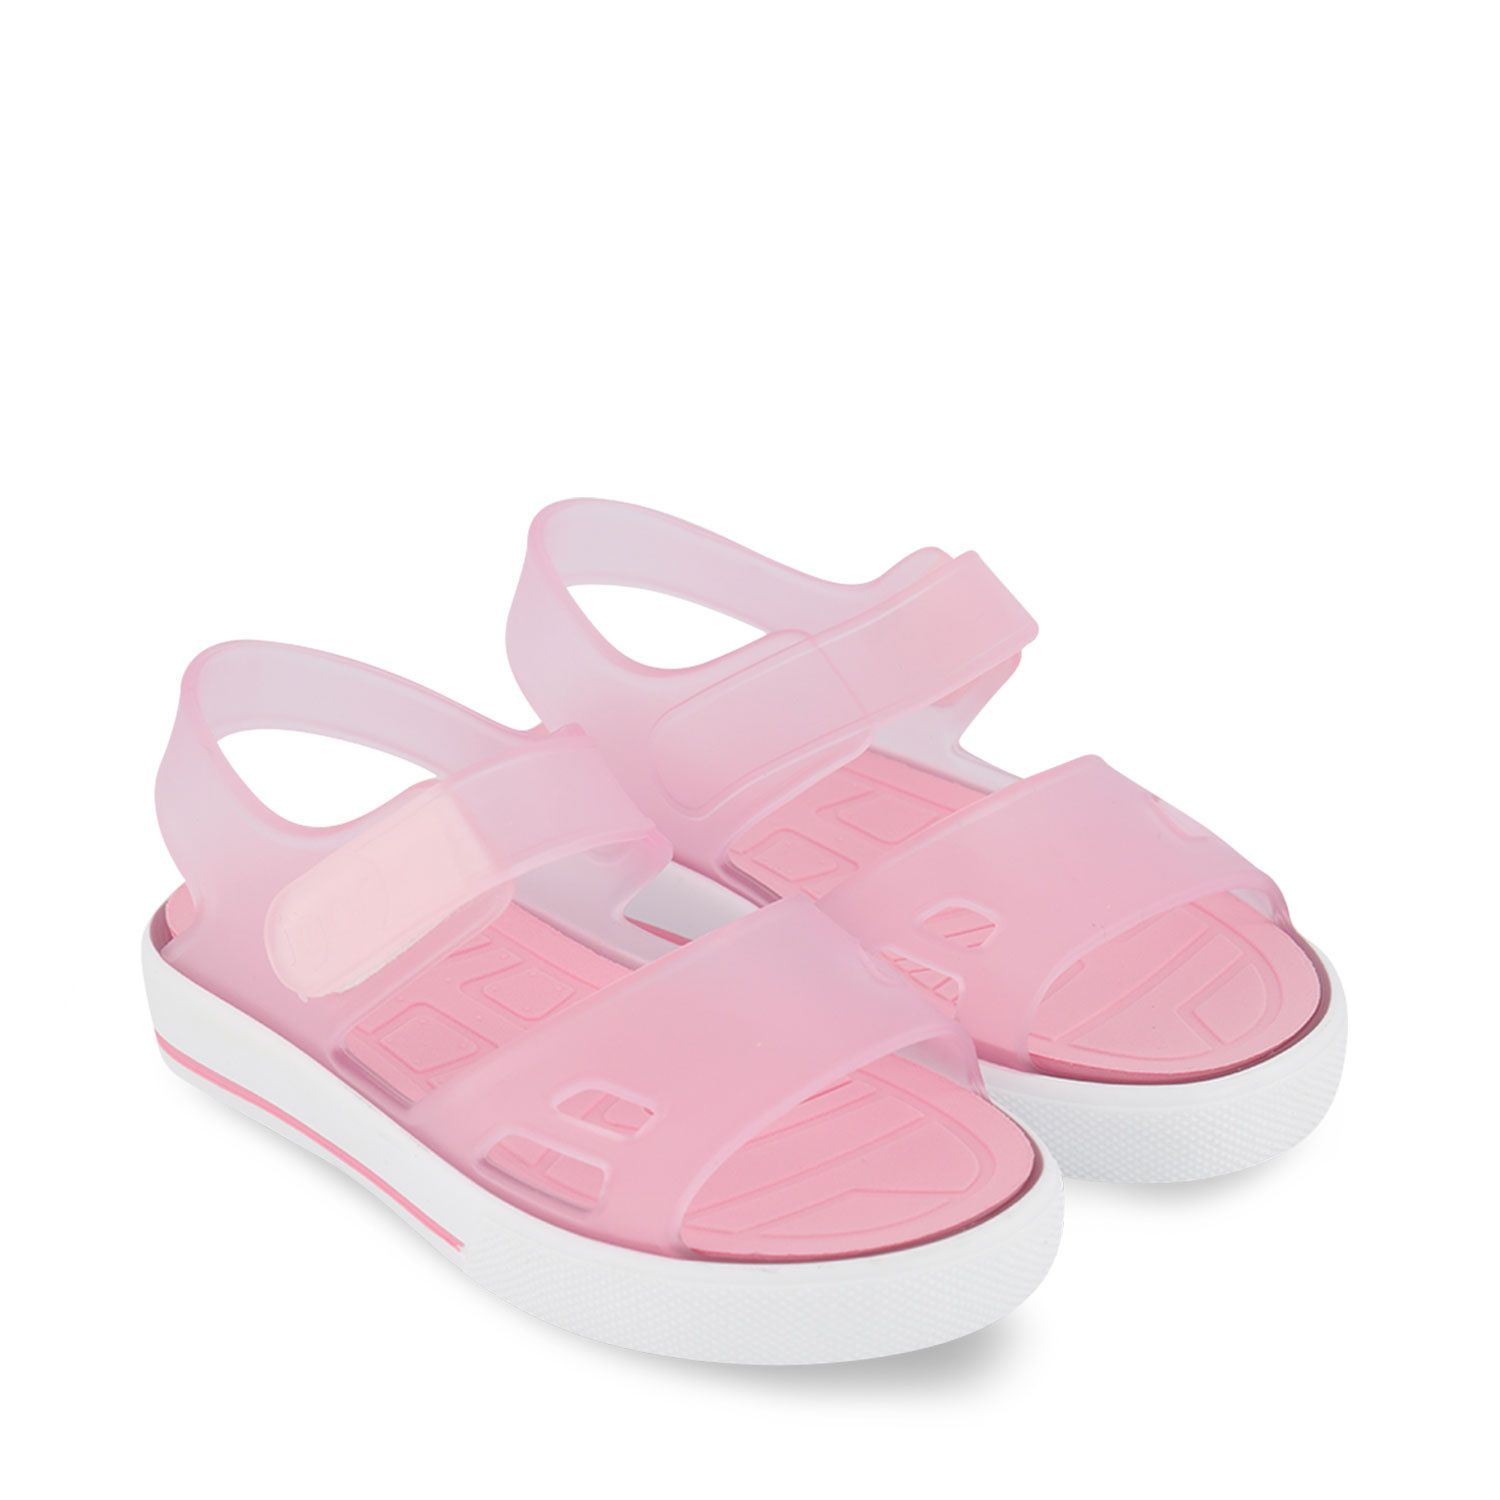 Picture of Igor S10231 kids sandals light pink